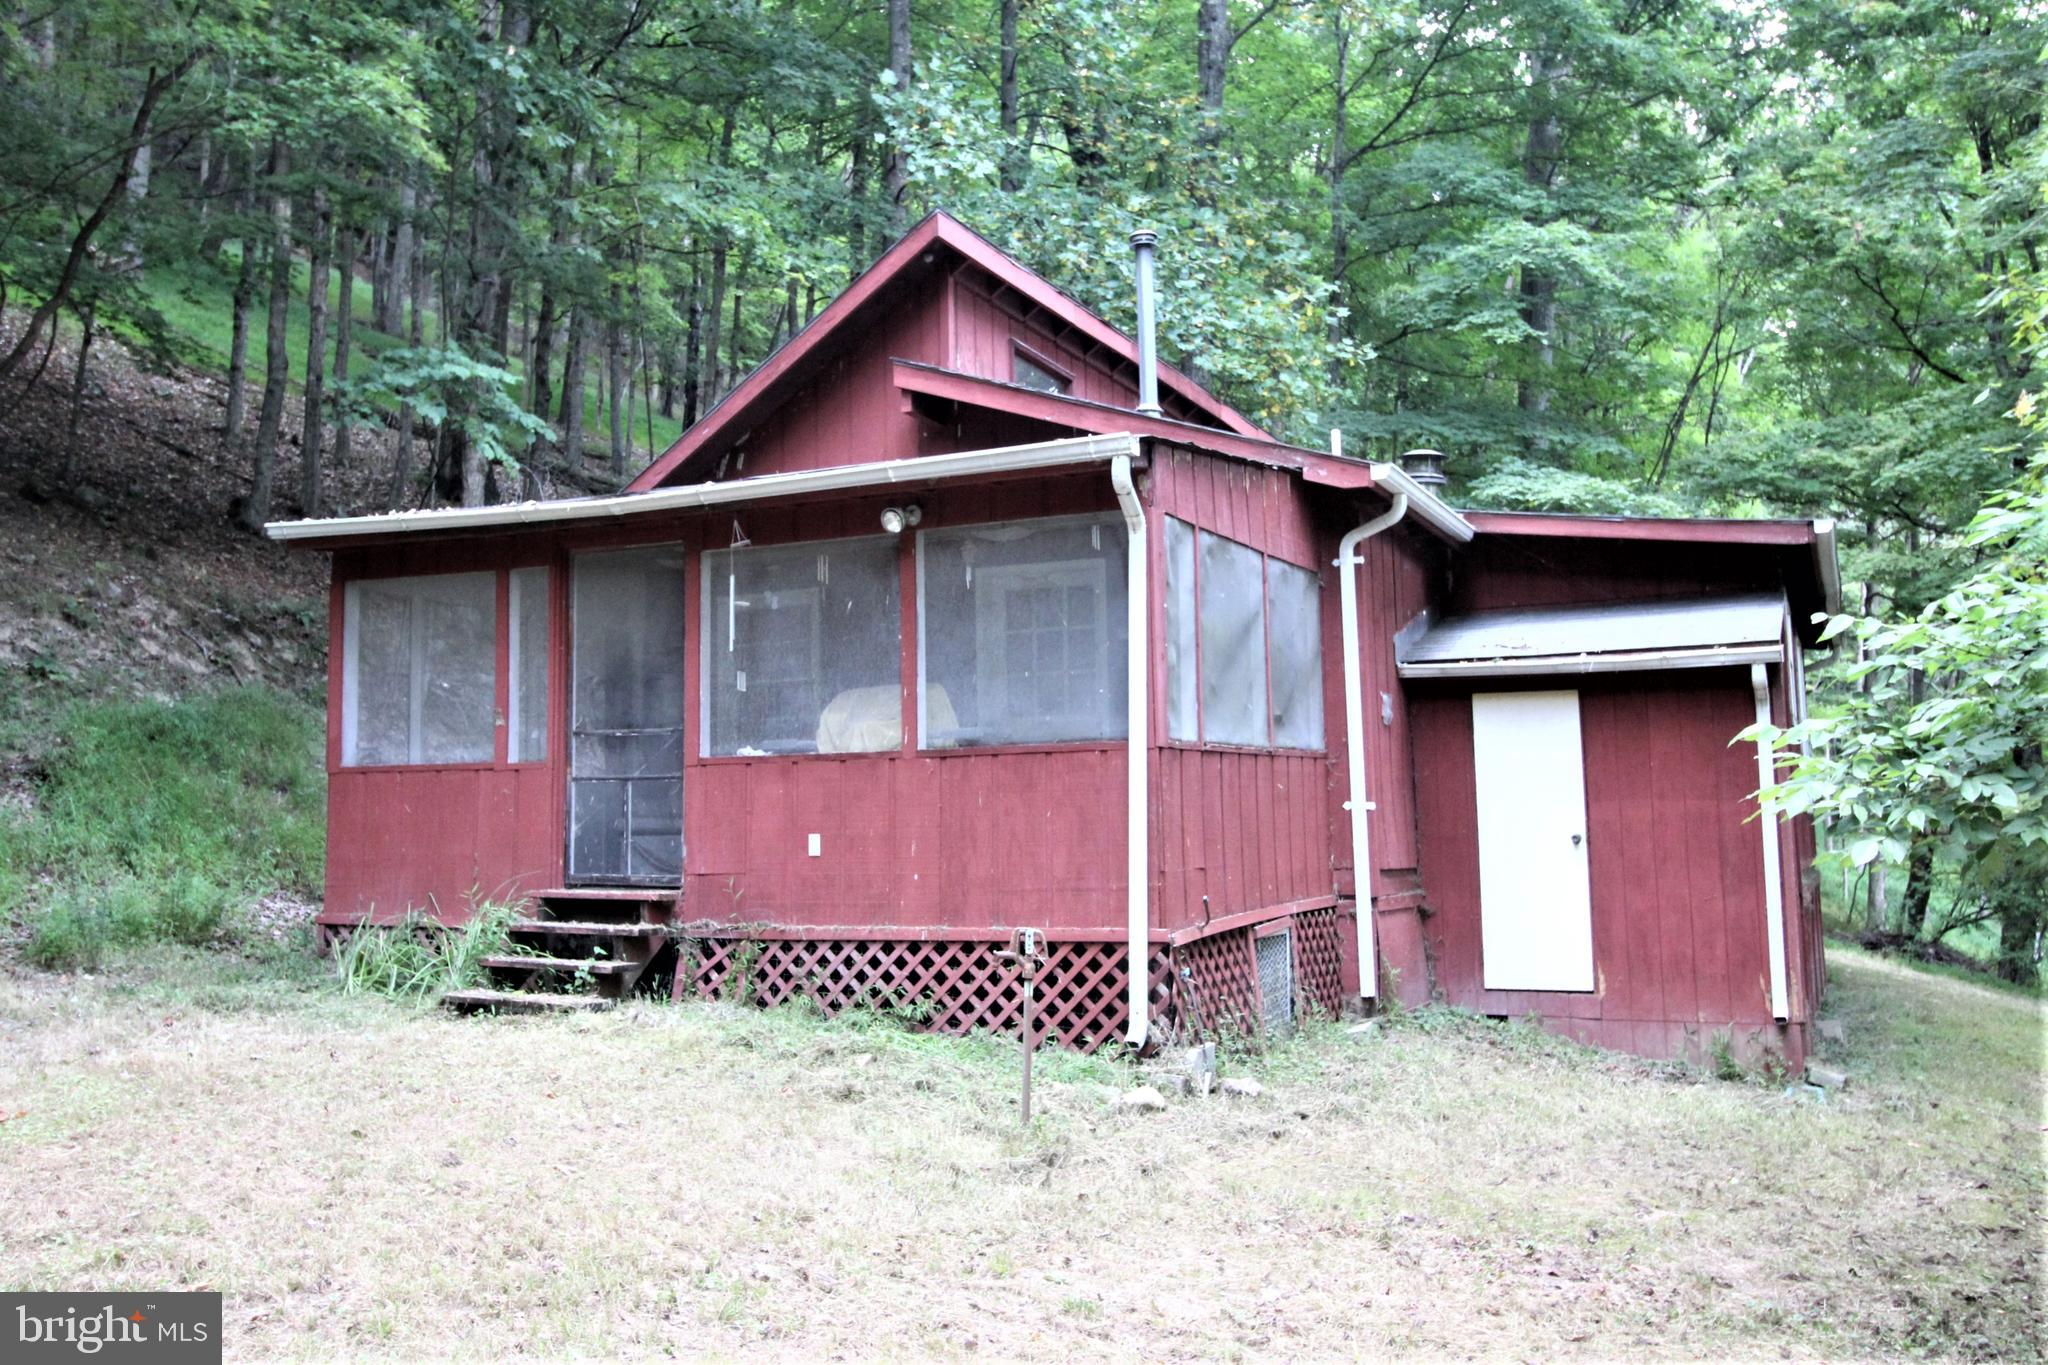 What more could you ask for? This darling red cabin with two bedrooms, full bath, galley kitchen, living room and dining room is on over 4 1/2 wooded acres! Located in a recreational community that surrounds the 44 acre state owned, maintained and stocked Warden Lake! Enjoy an evening by a camp fire listening to the soothing night sounds or curl up with a good book on the enclosed screened porch. Not only can you enjoy the pleasure of Warden Lake but, you can go to the quant shops, farmer's market & restaurants in the Town of Wardensville, just 5 minutes away. Approximately 2 hours from the DC area and 40 minutes from Winchester, VA.